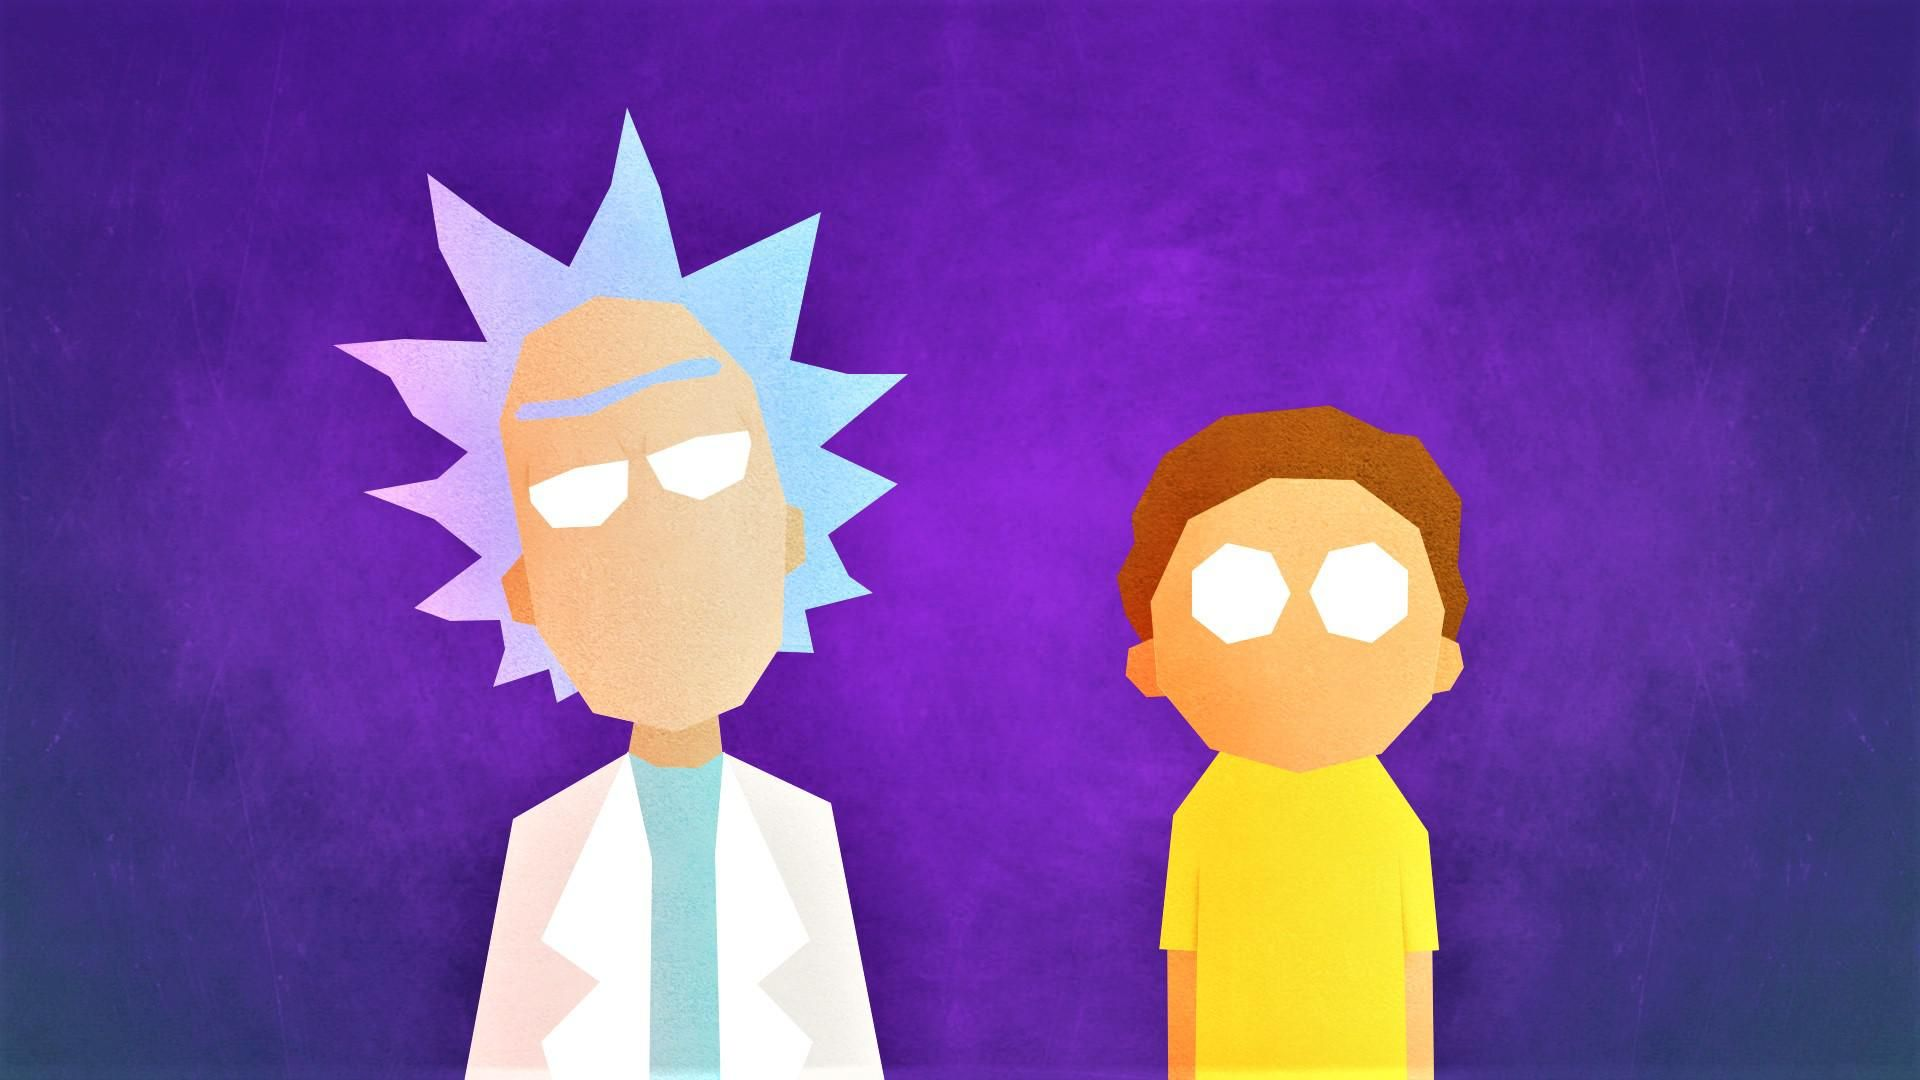 Rick And Morty Minimalist 1920x1080 Rick And Morty Poster Morty Smith Rick And Morty Season